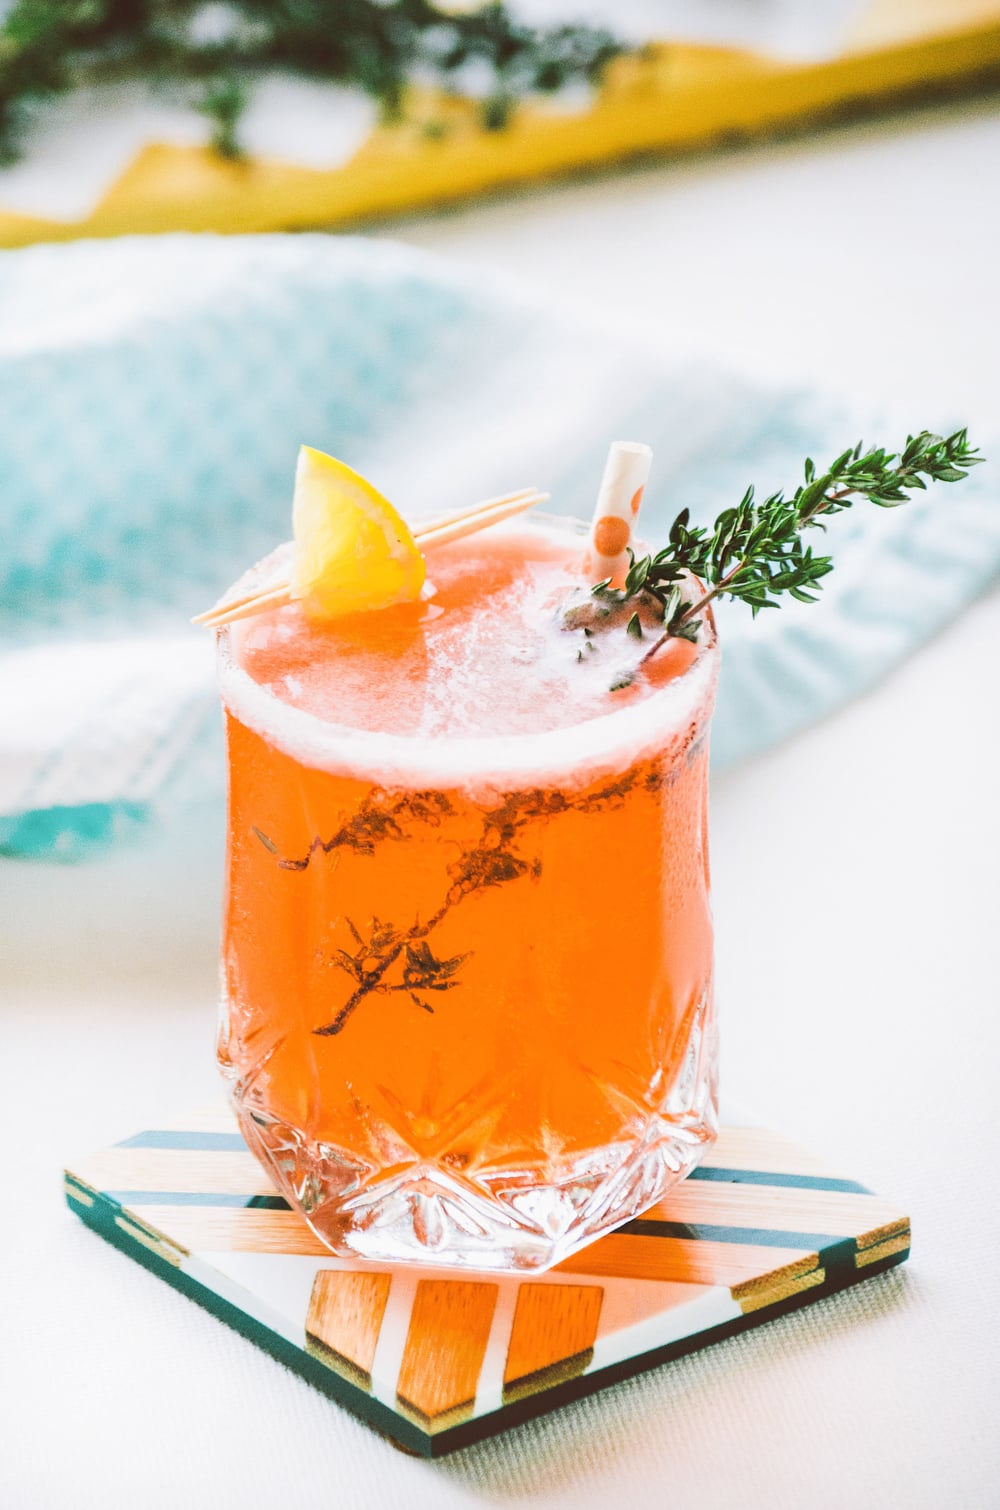 Strawberry Balsamic & Thyme Vodka Tonic   Recipe & Styling by  Dani Colombatto